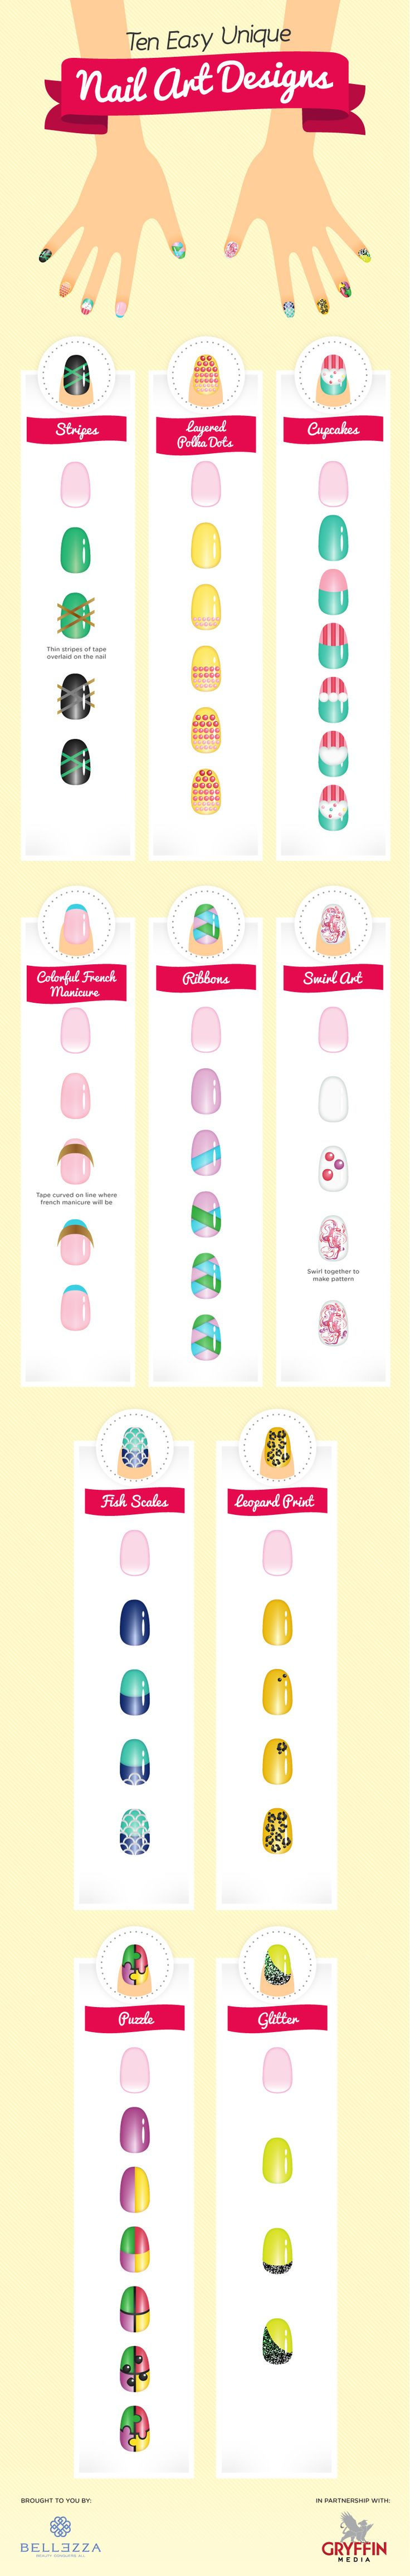 You never need to look boring again even the fashion is changing so fast. Different nail designs can make your life more interesting and wonderful. Either a new color or a new design can bring you a totally new style for your life. You can create pretty looks on your nails every single day. Today,[Read the Rest]